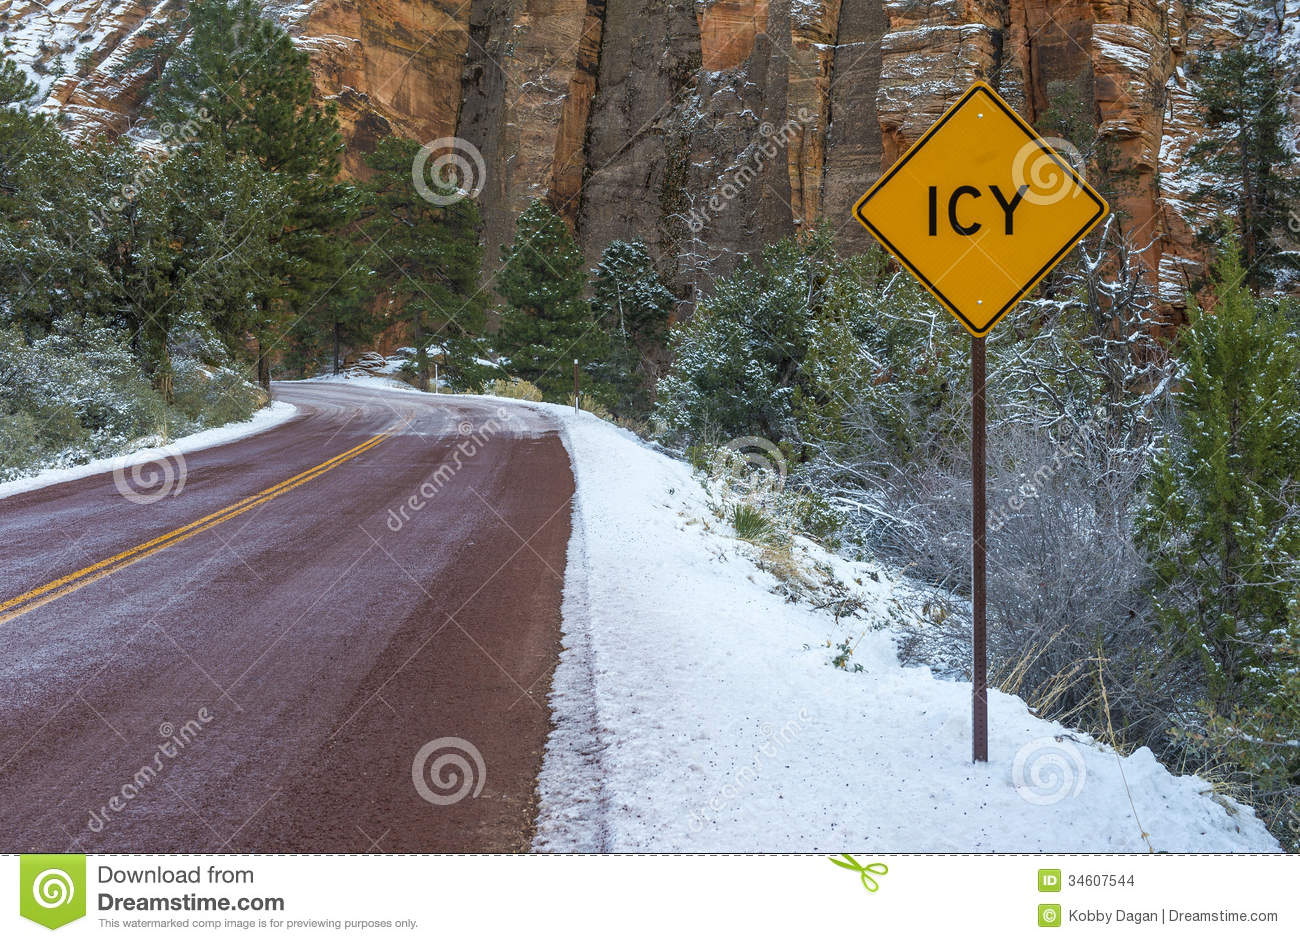 how to drive on icy roads video